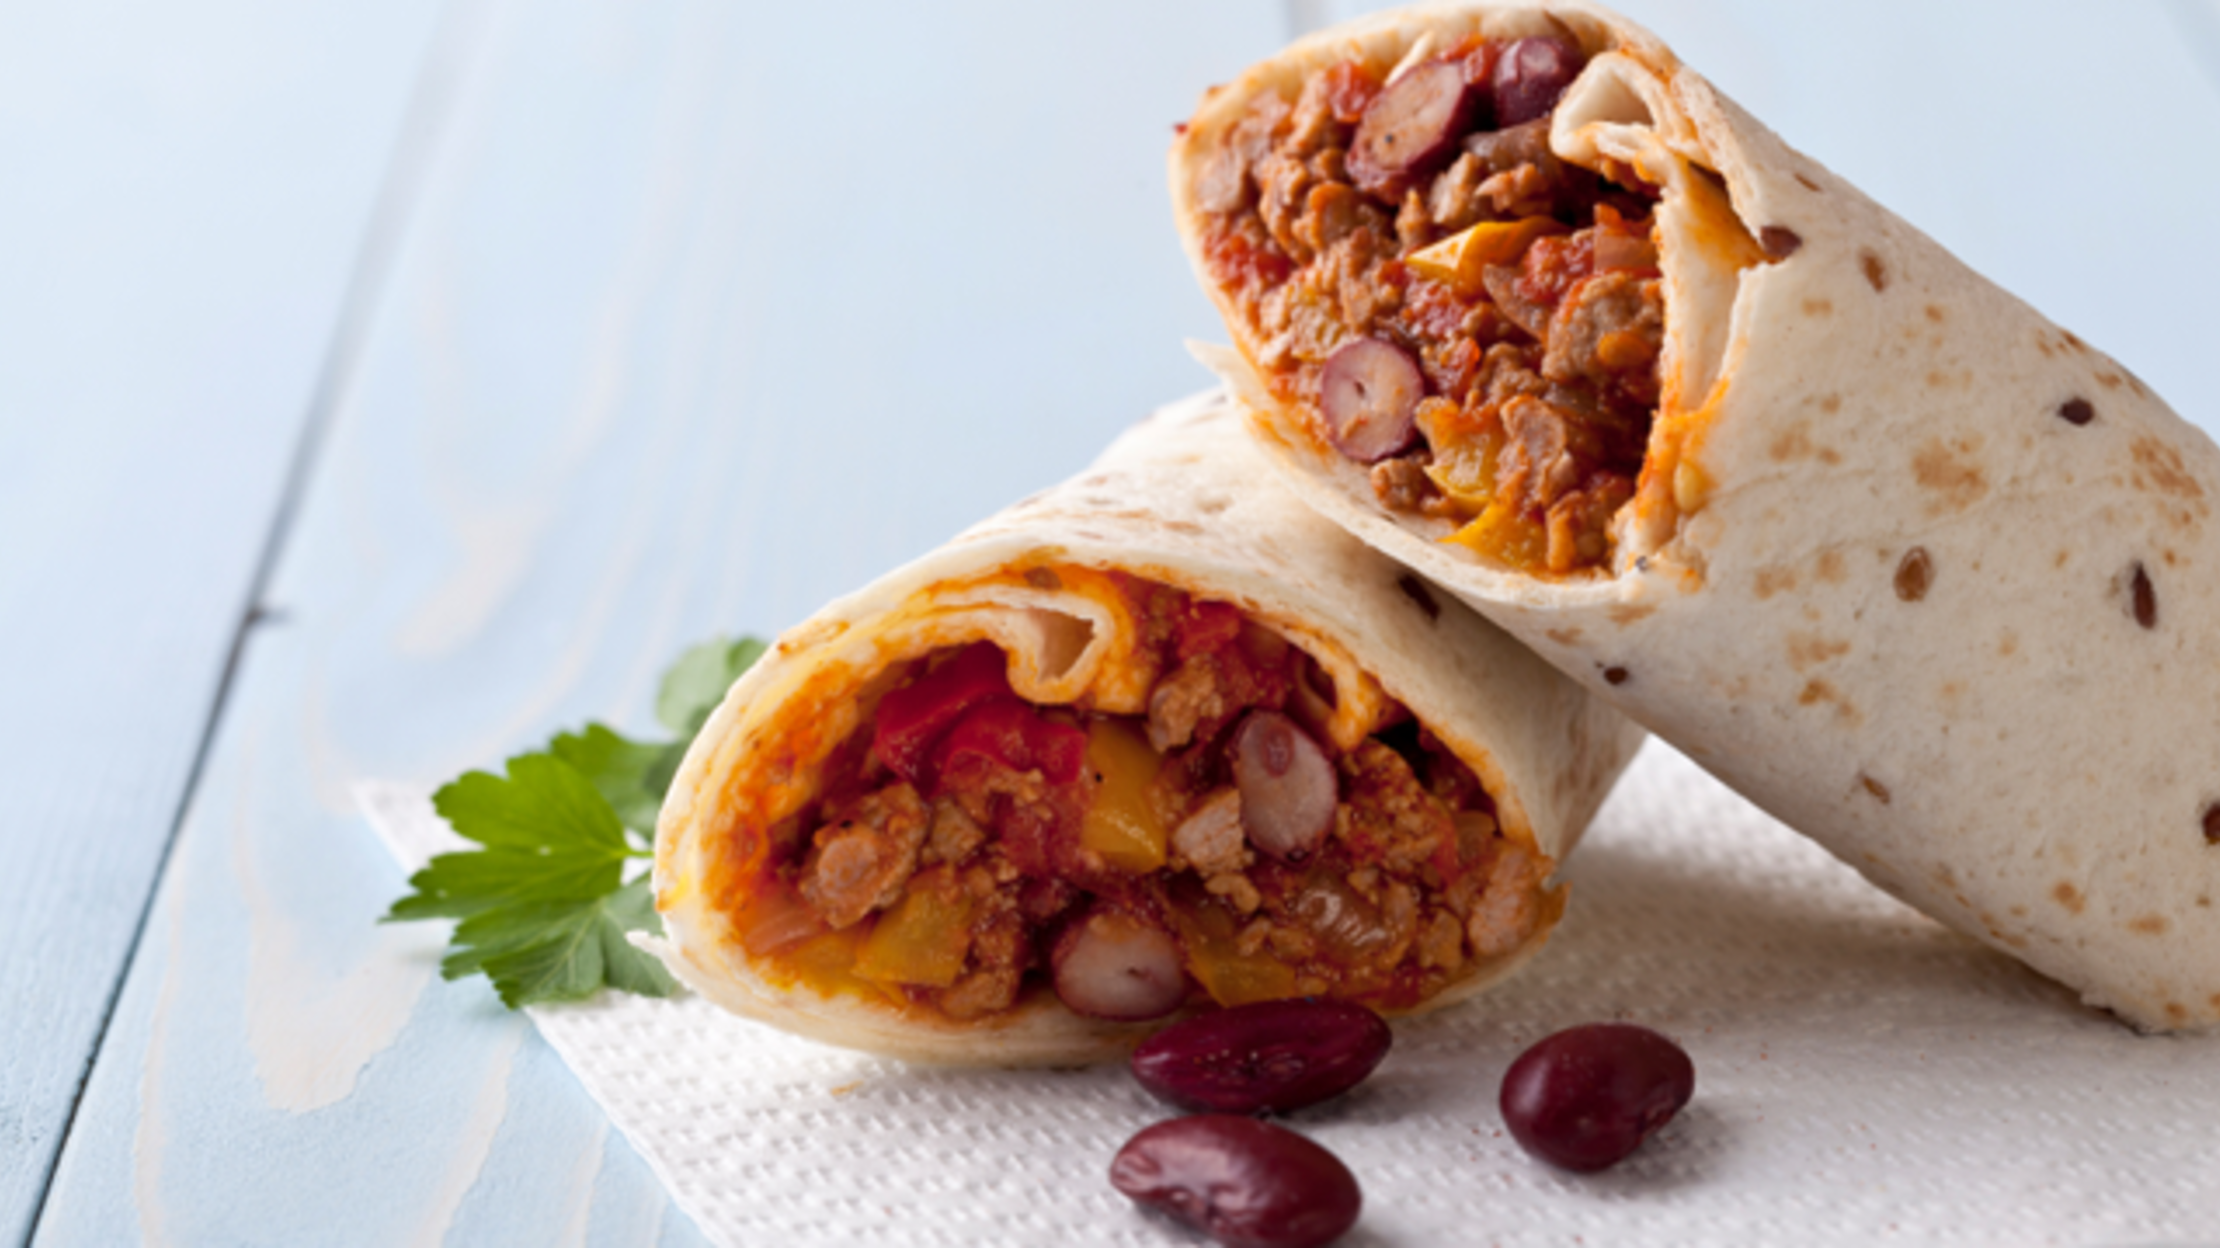 This App Will Help You Locate The Closest Burrito Mental Floss